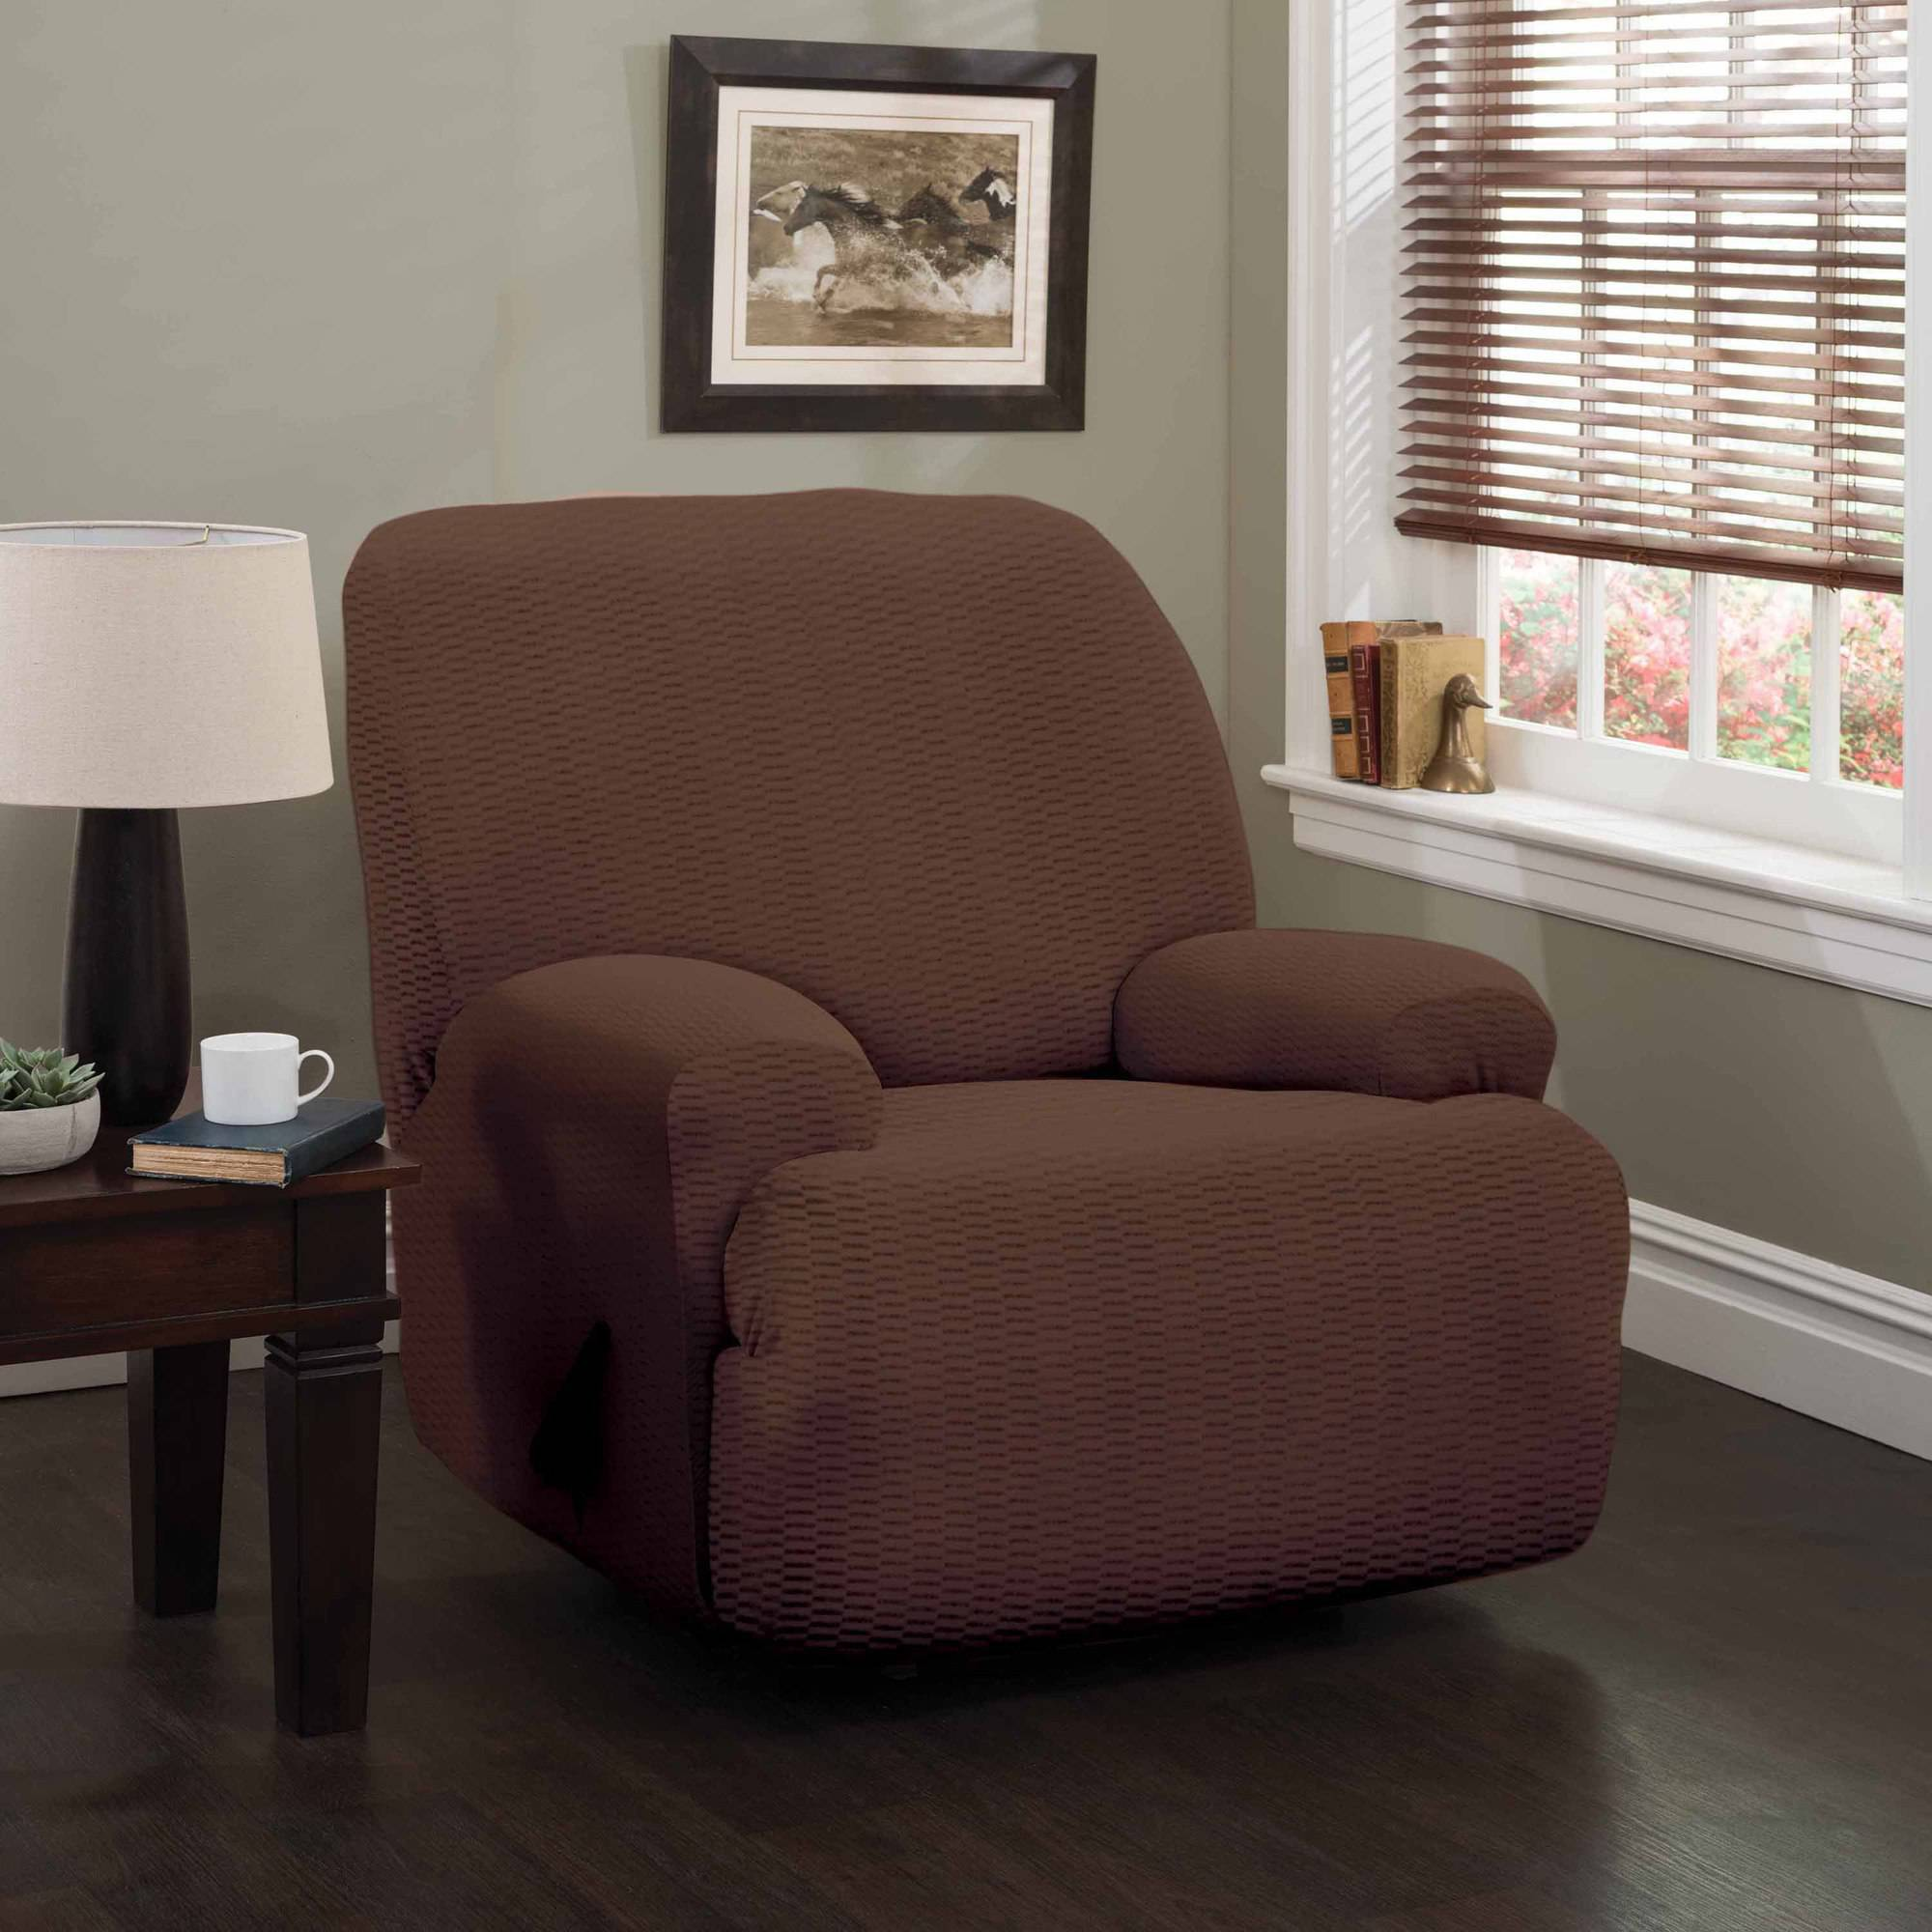 pique medium lift stretch slipcover fit recliner walmart sure com slipcovers recliners for ip